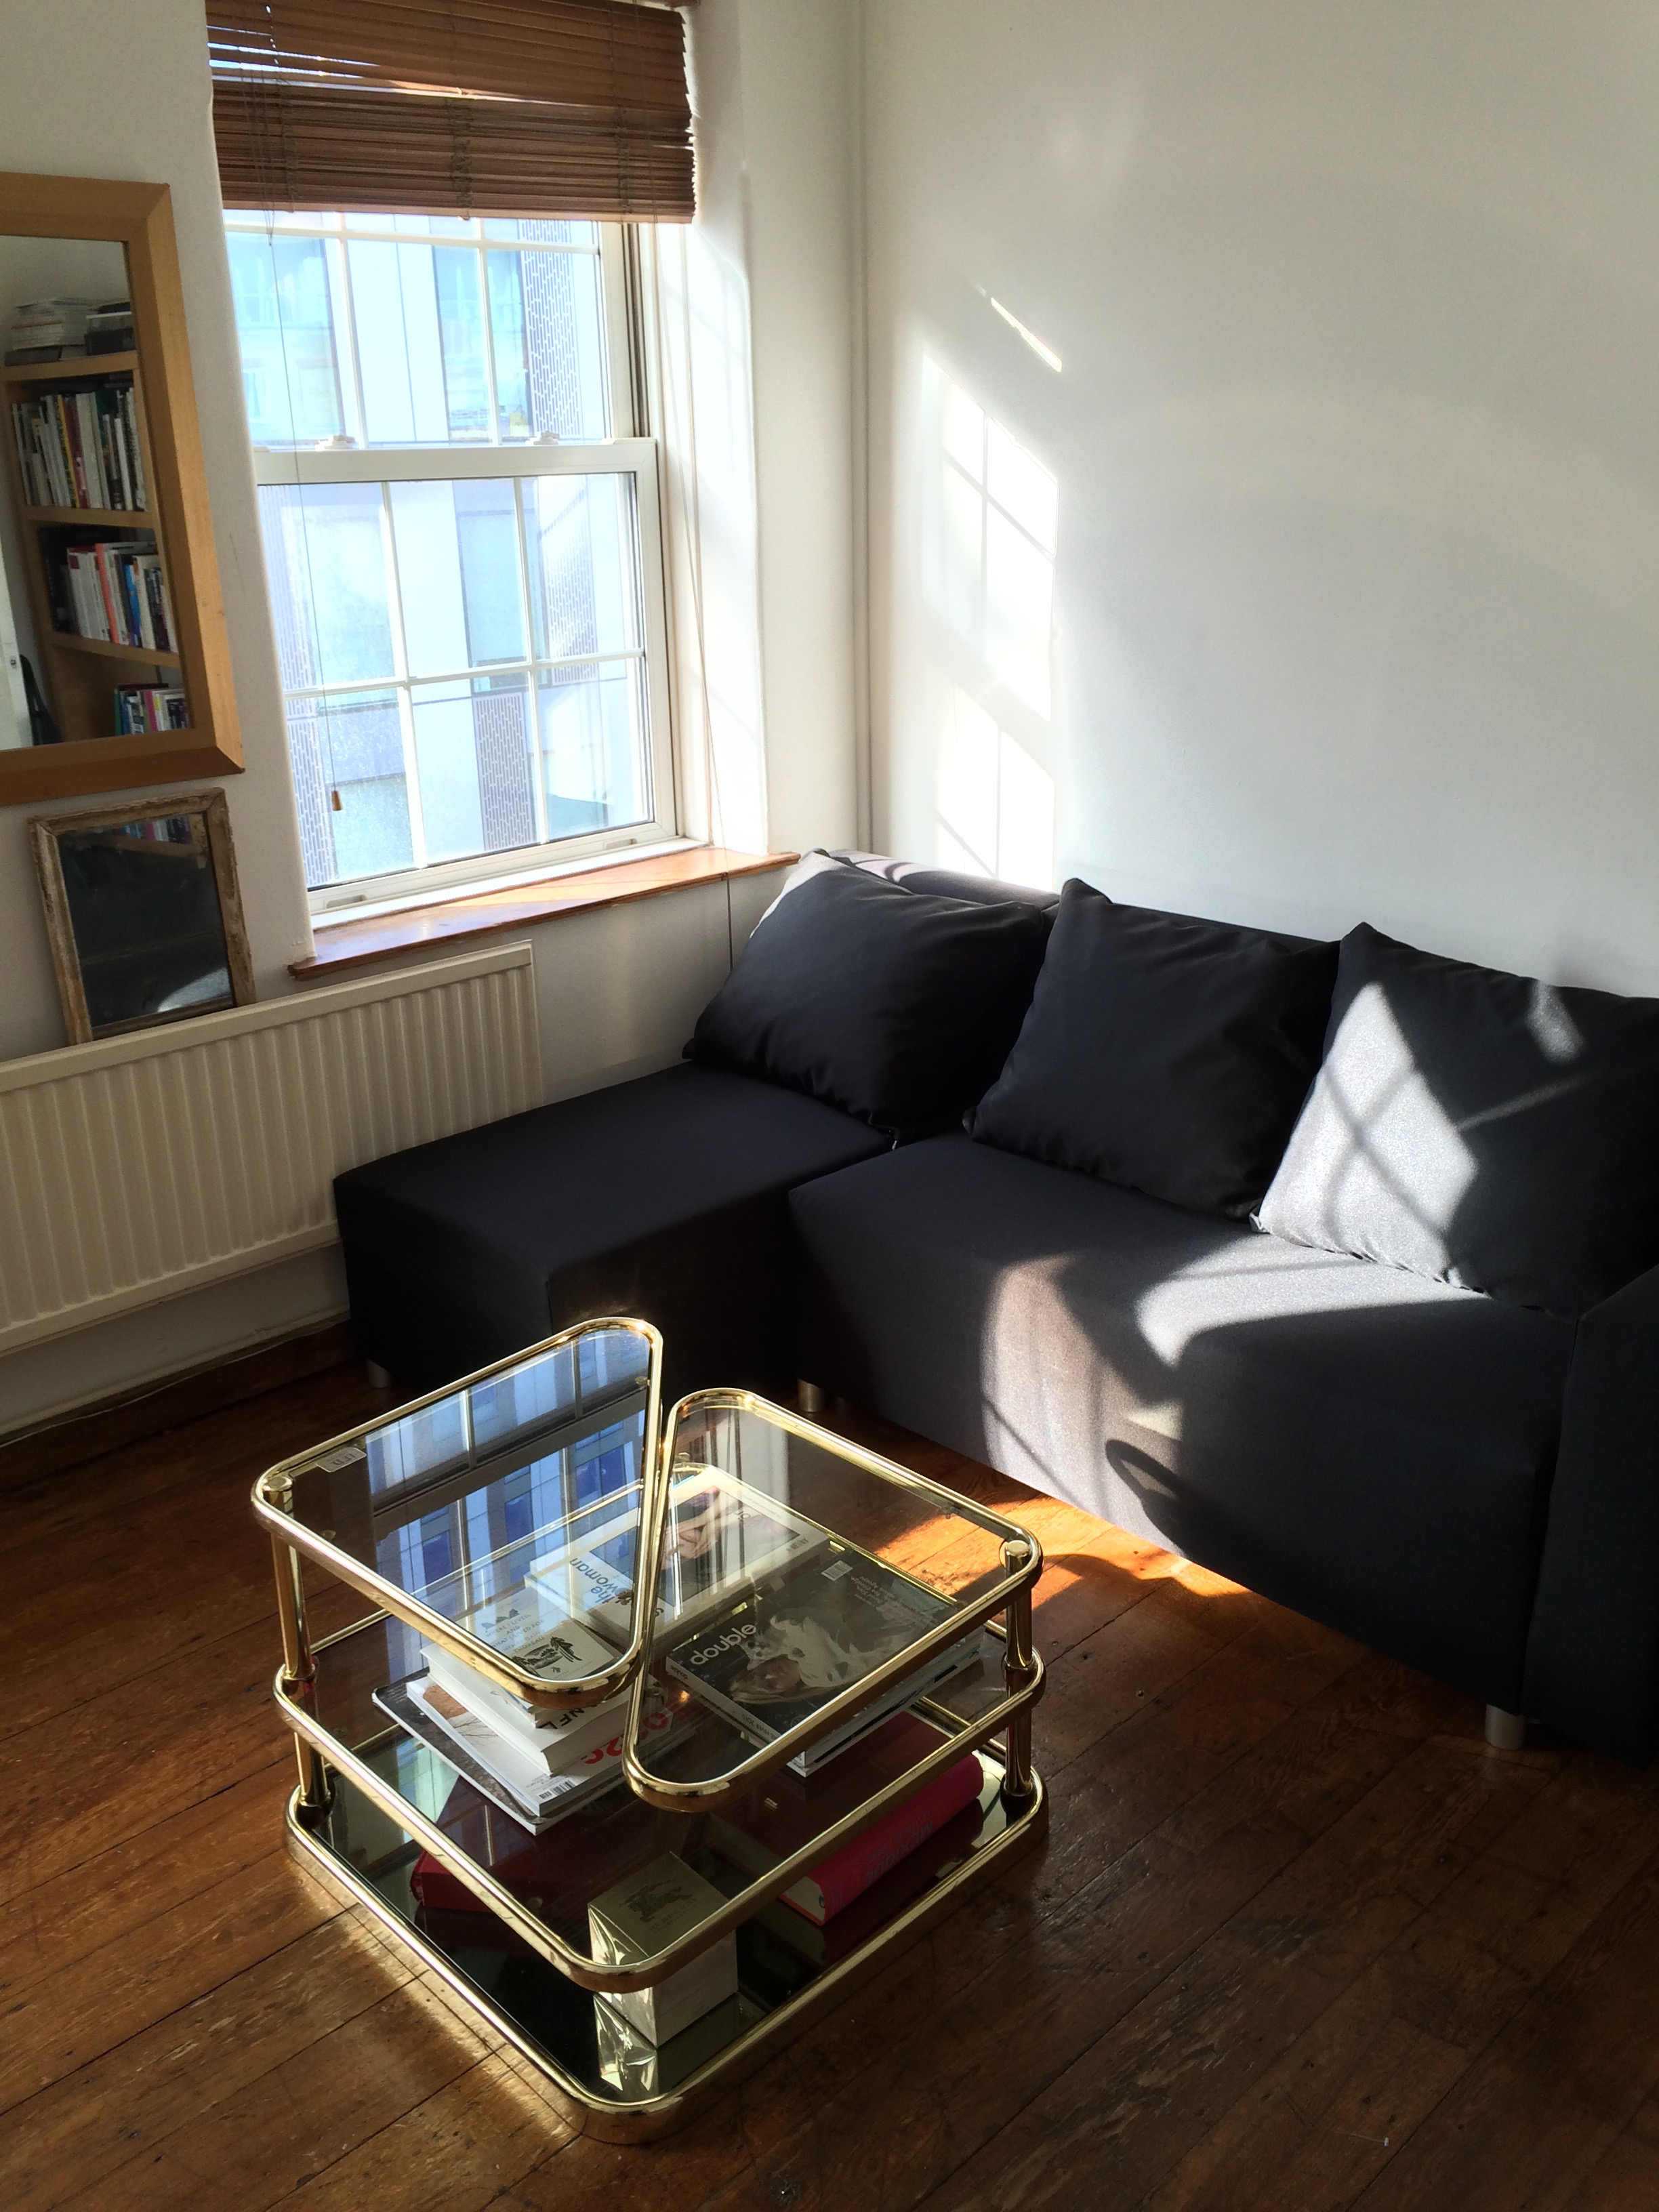 1 Bedroom Apartment in Goulston Street, Spitalfields/Liverpool Street E1 7TP